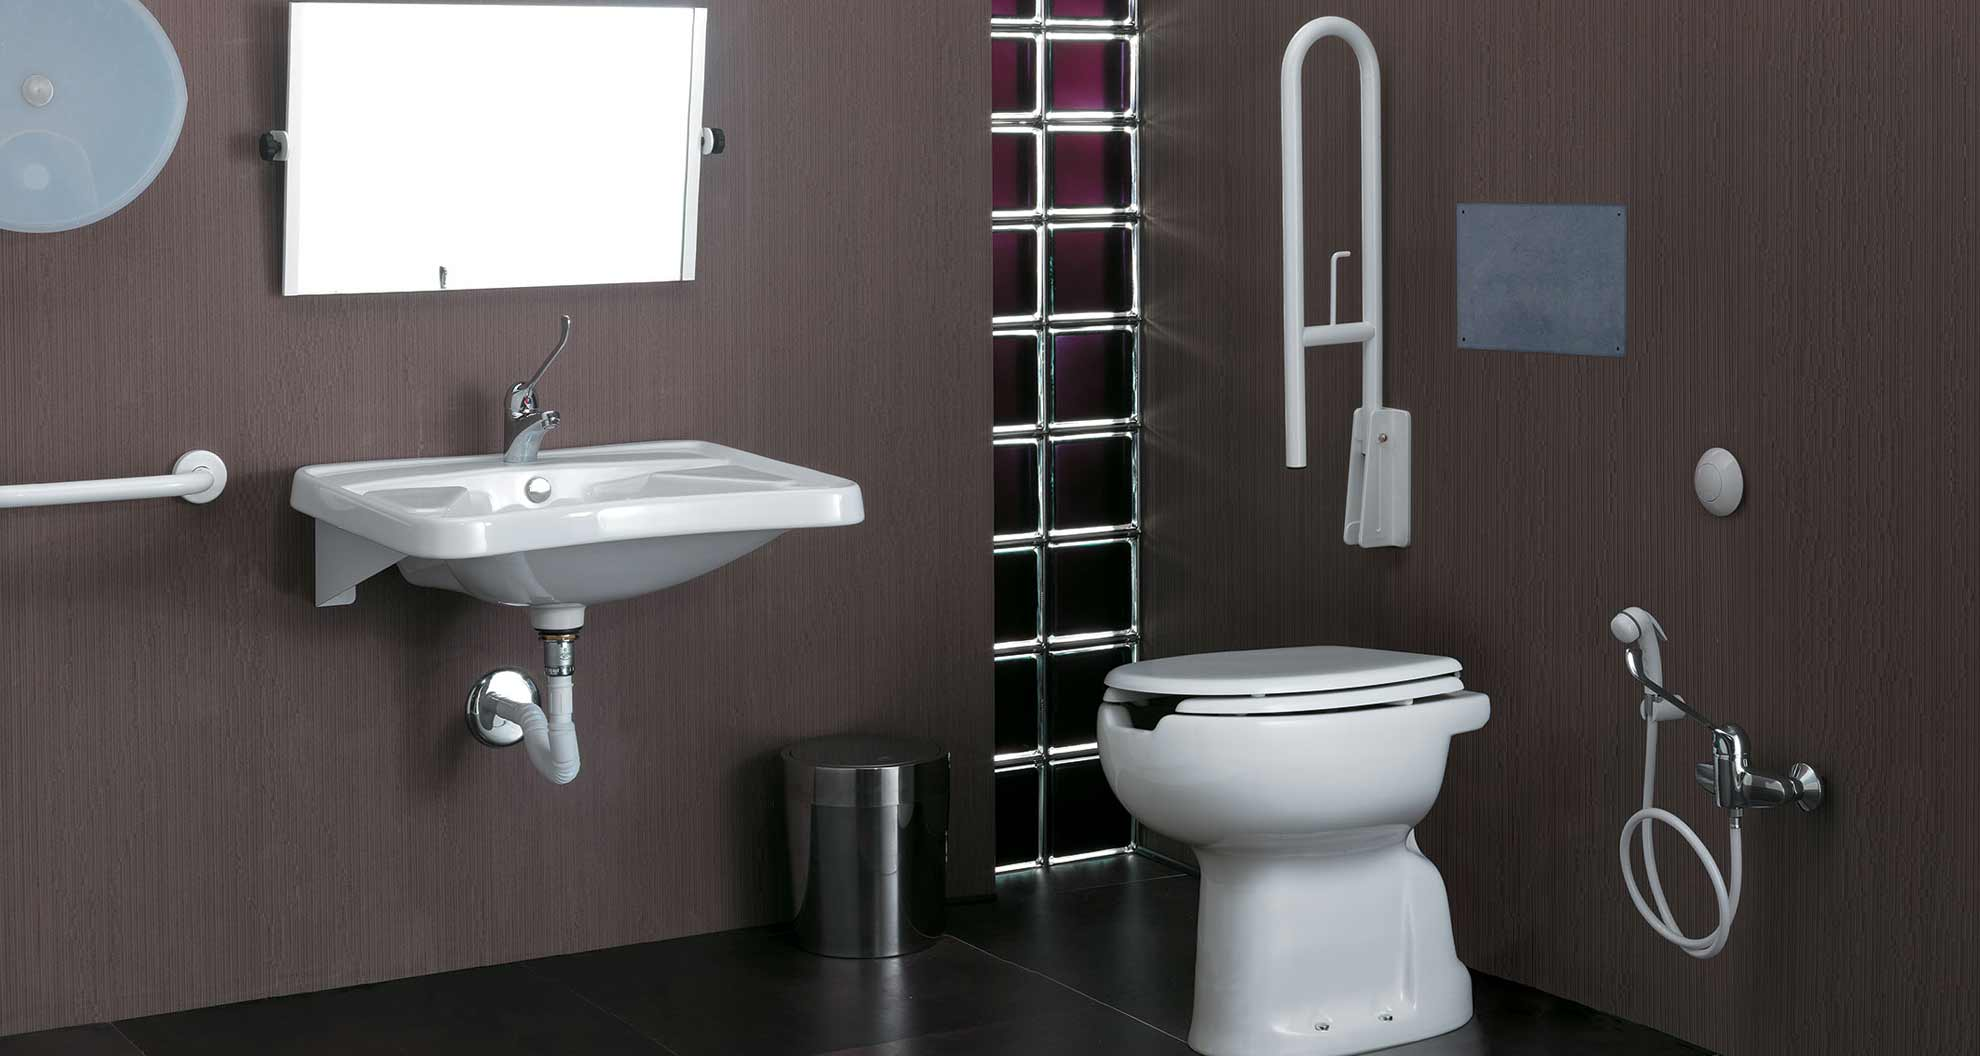 Sanitari E Accessori Bagno Disabili.Ausil Line Sanitosco Sanitari E Design